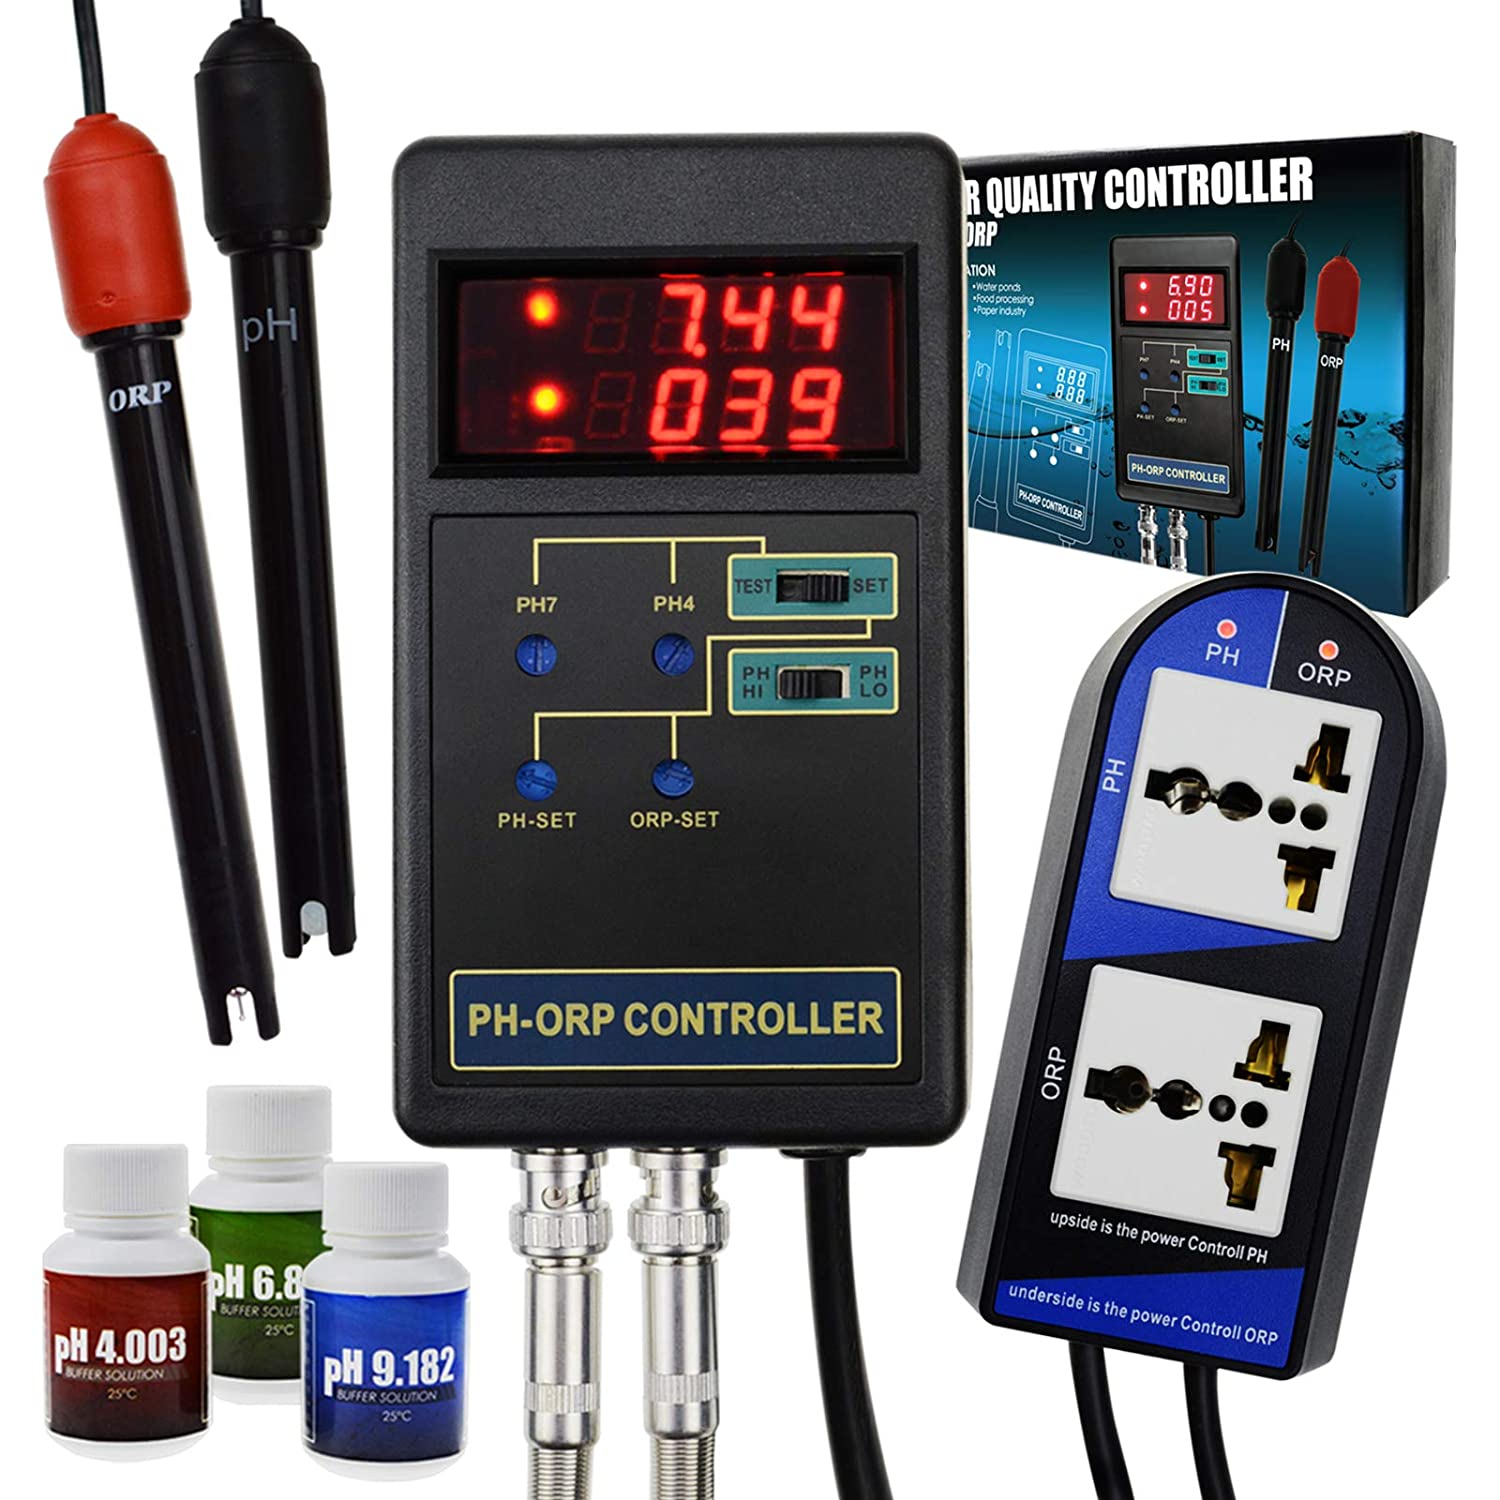 2 in 1 Digital pH and ORP Controller with Separate Relays Repleaceable Electrode BNC Type Probe Water Quality Tester for Aquarium Hydroponics Tank Monitor 14.00pH / 1999mV Calibration Solution Gain Express Holdings Ltd PHC-244